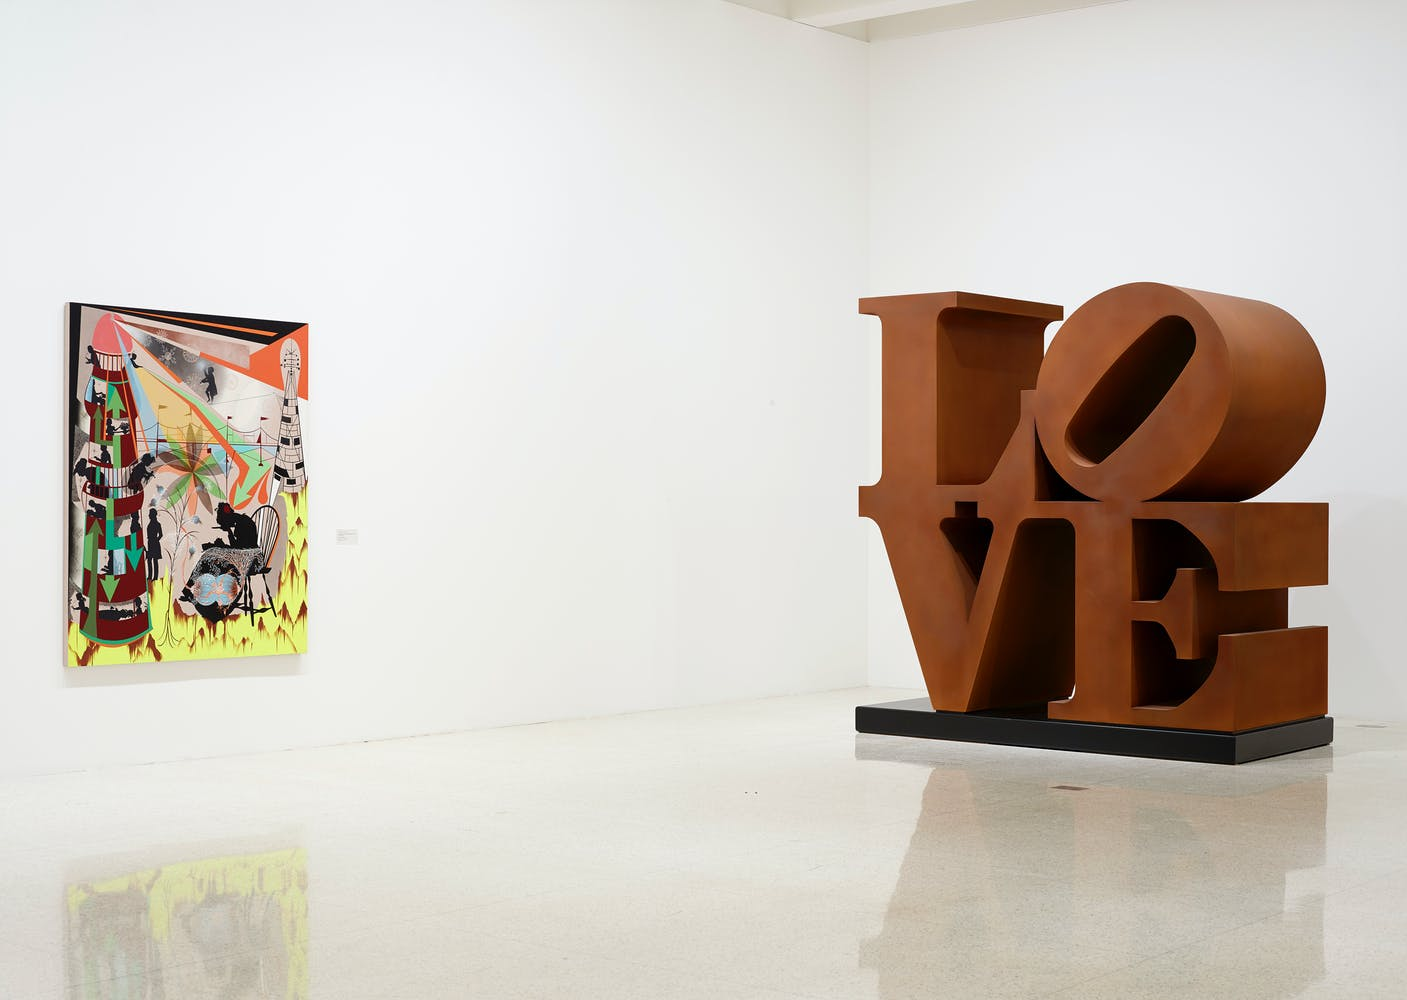 View of the exhibition 75 Gifts for 75 Years, 2015; (left to right): Lari Pittman, This Desire, Beloved and Despised, Continues Regardless, 1989; Robert Indiana, LOVE, 1966-1998